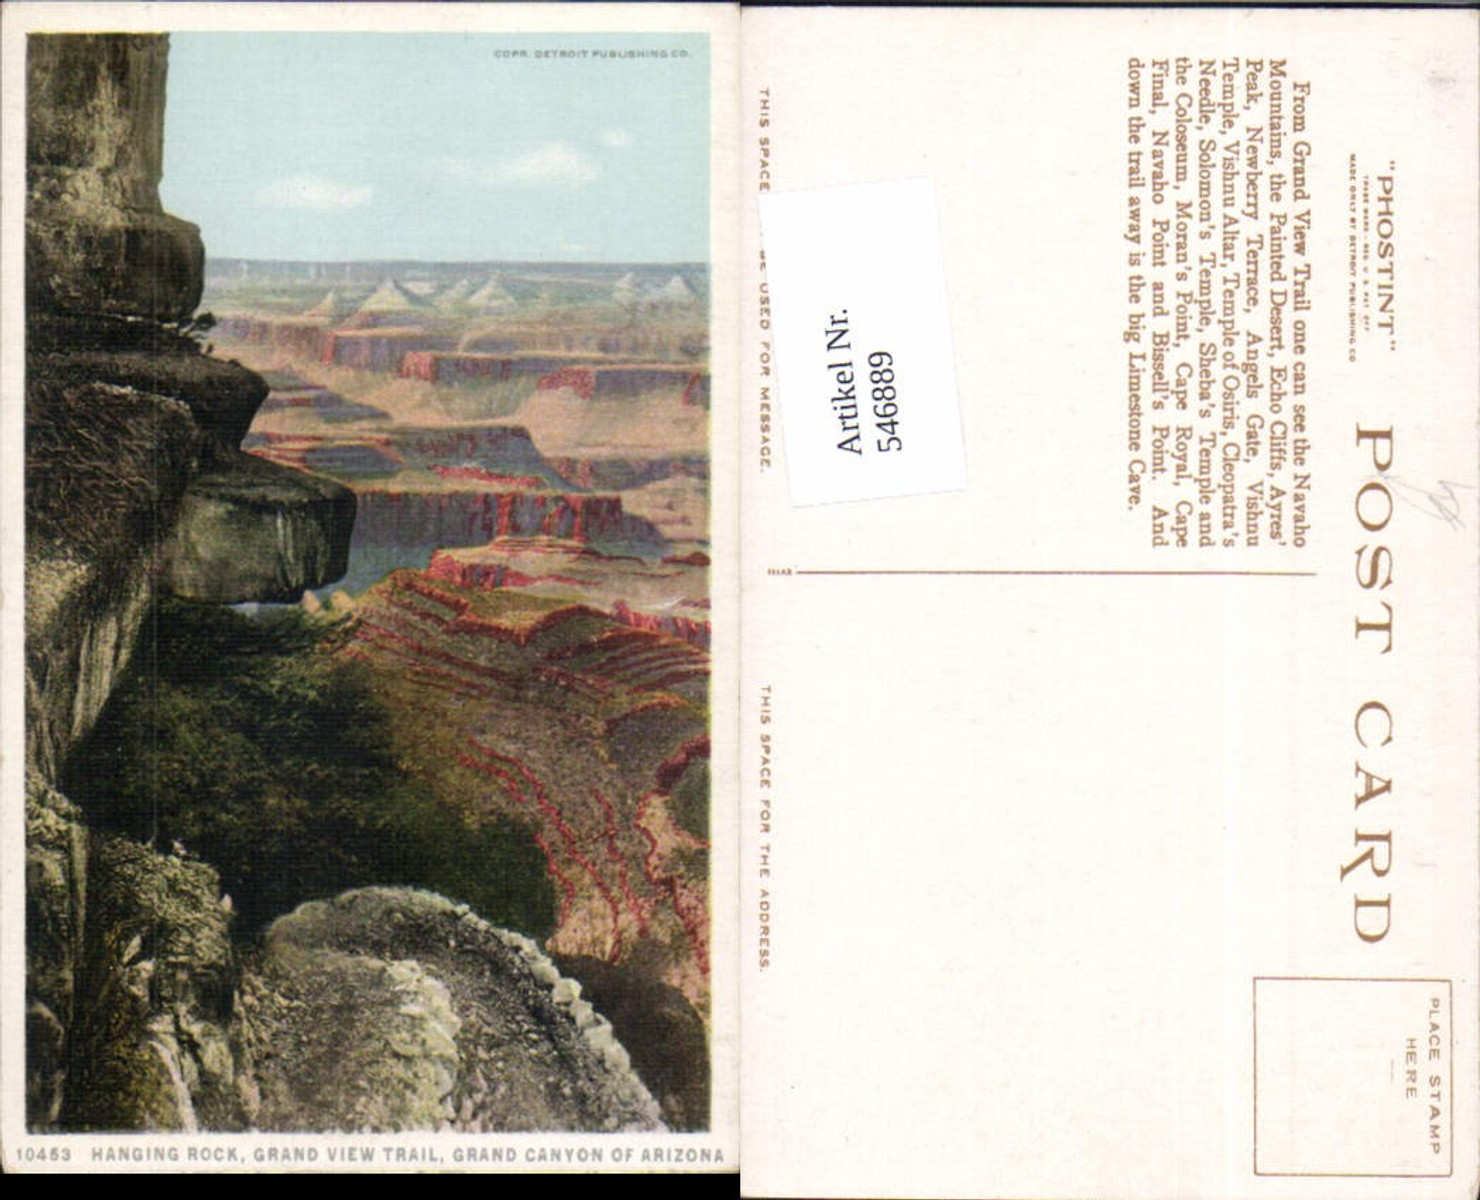 546889,Arizona Grand Canyon Hanging Rock Grand View Trail günstig online kaufen